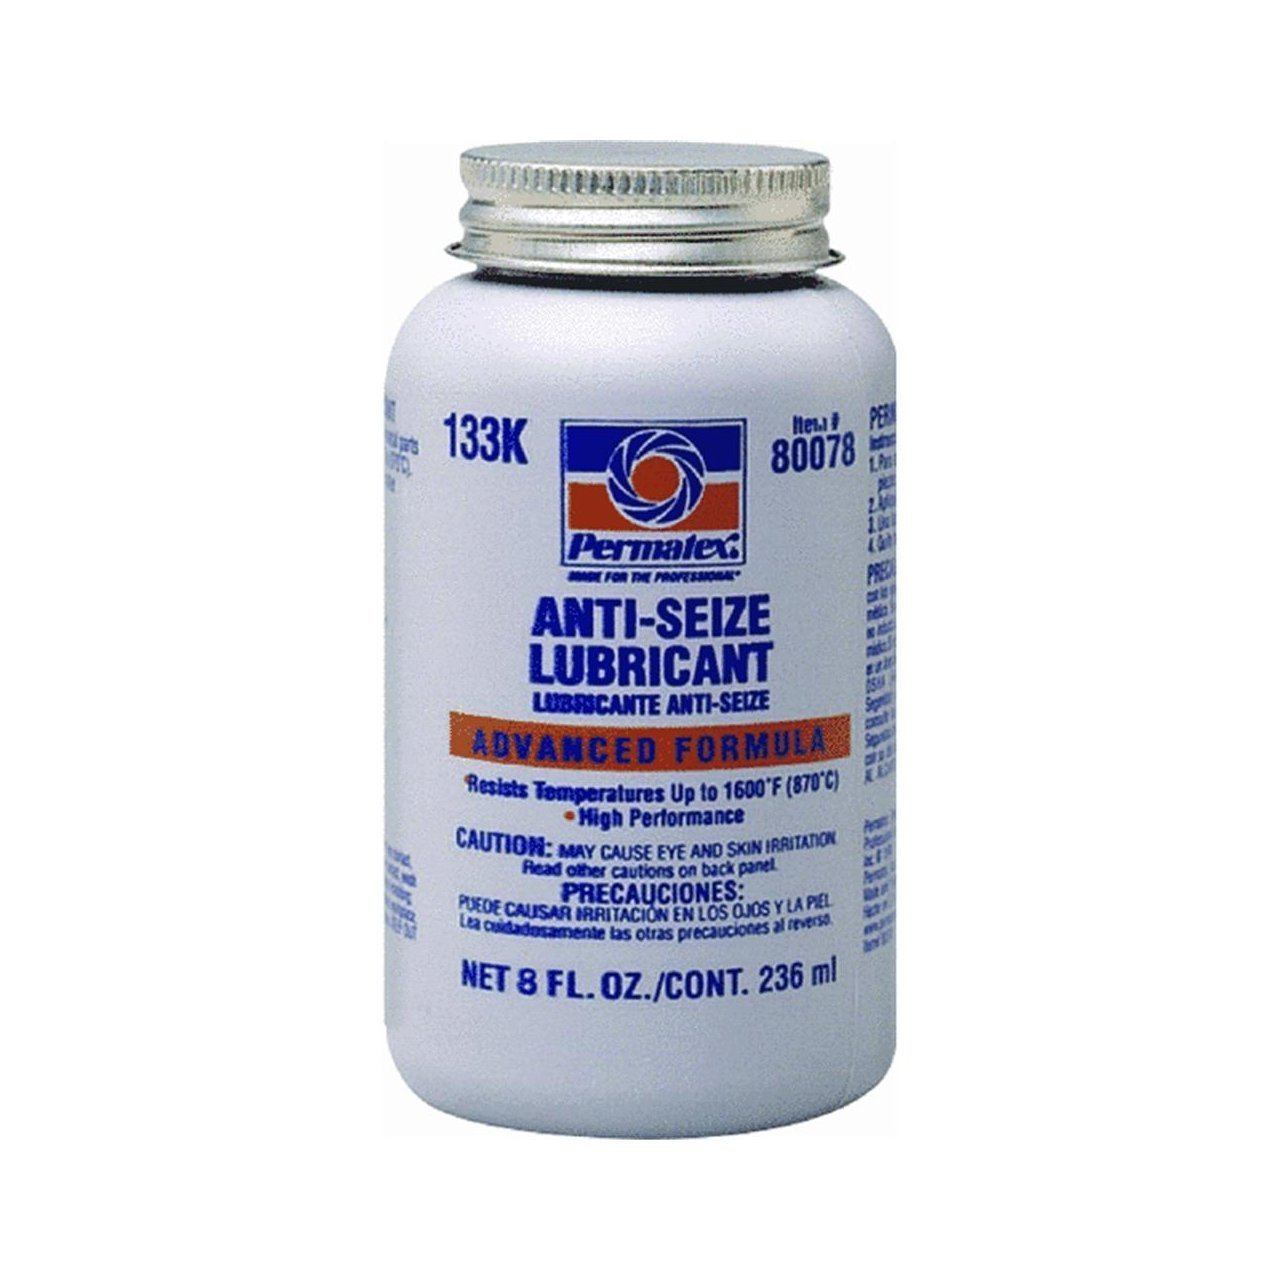 Permatex 80078 Anti-Seize Lubricant with Brush Top Bottle, 8 oz., Pack of 2 by Permatex